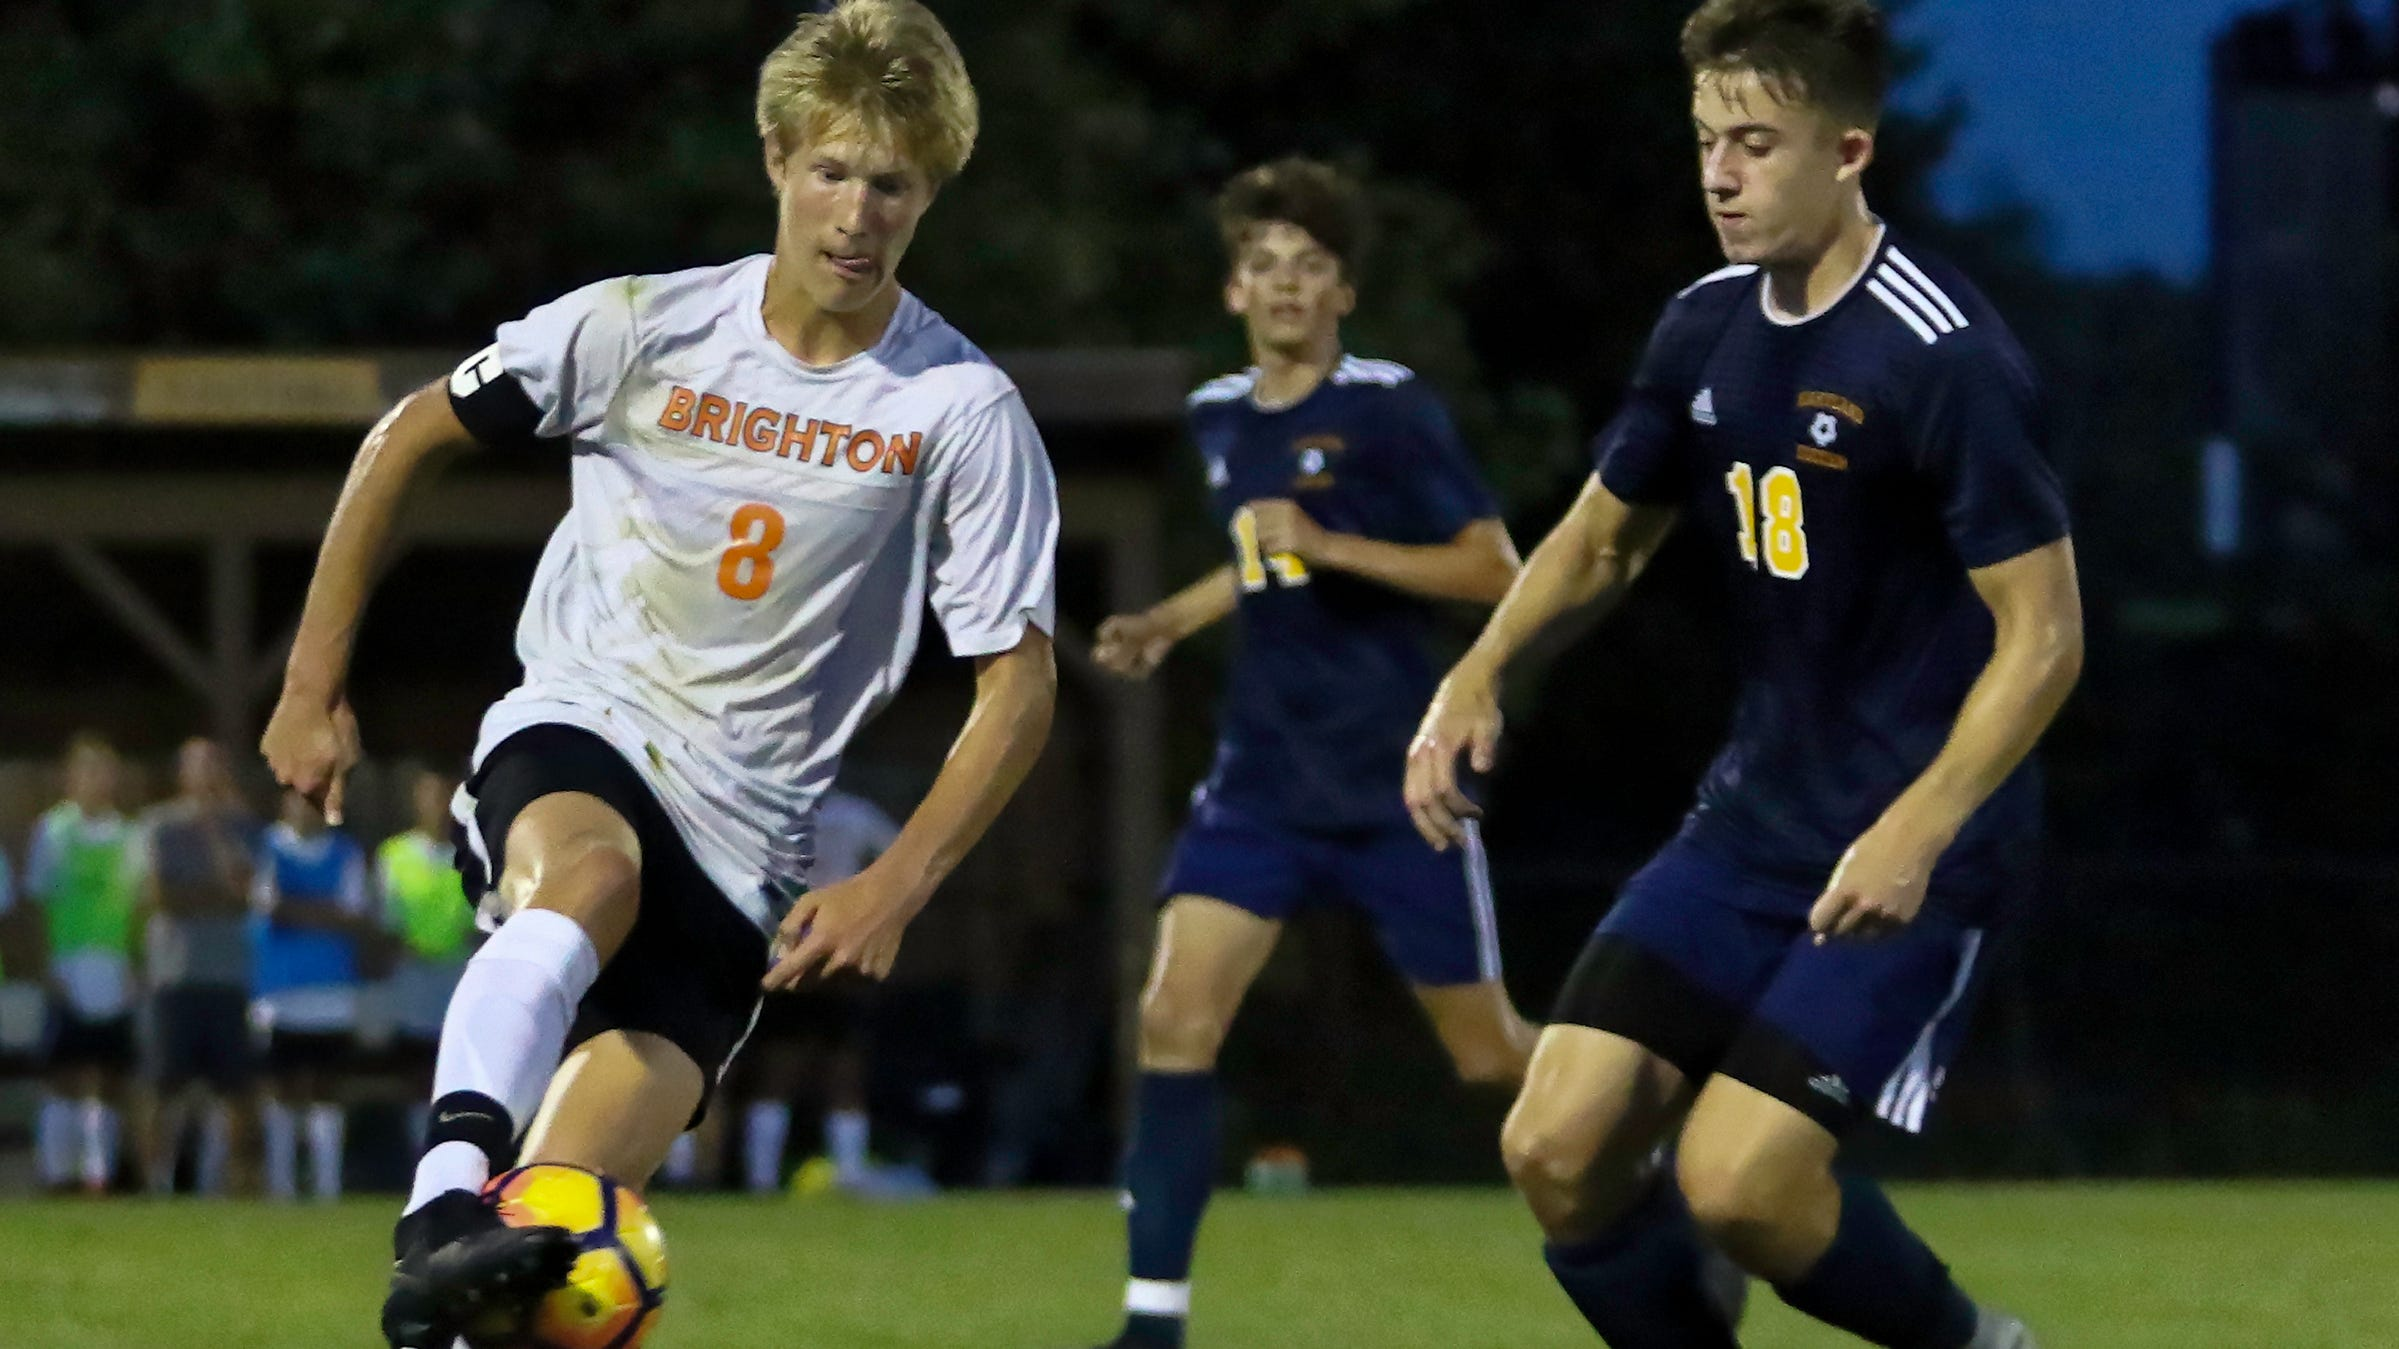 Charlie Sharp (8) and his Brighton teammates and Logan White (18) and his Hartland teammates will play in the soccer district at Lakeland.